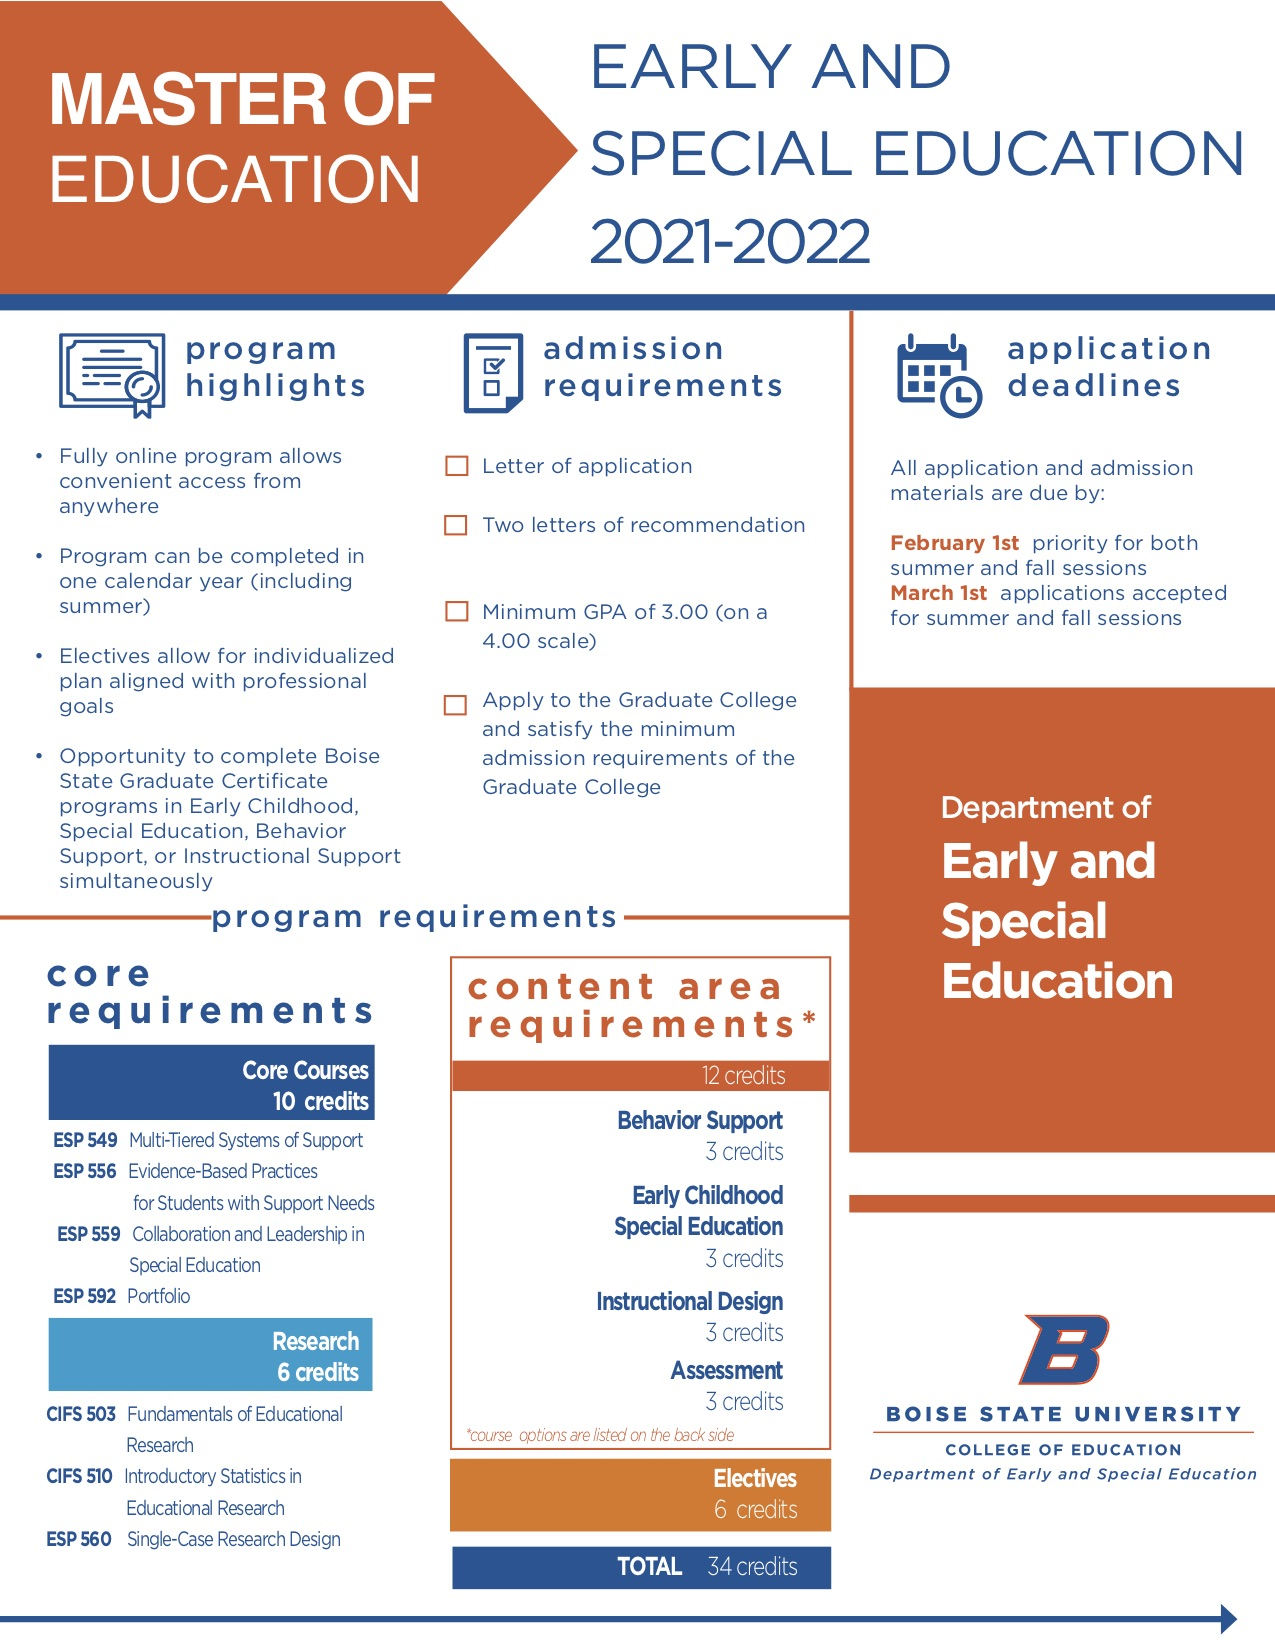 Visual Advising Guide for Master of Education in Early and Special Education 2021-2022